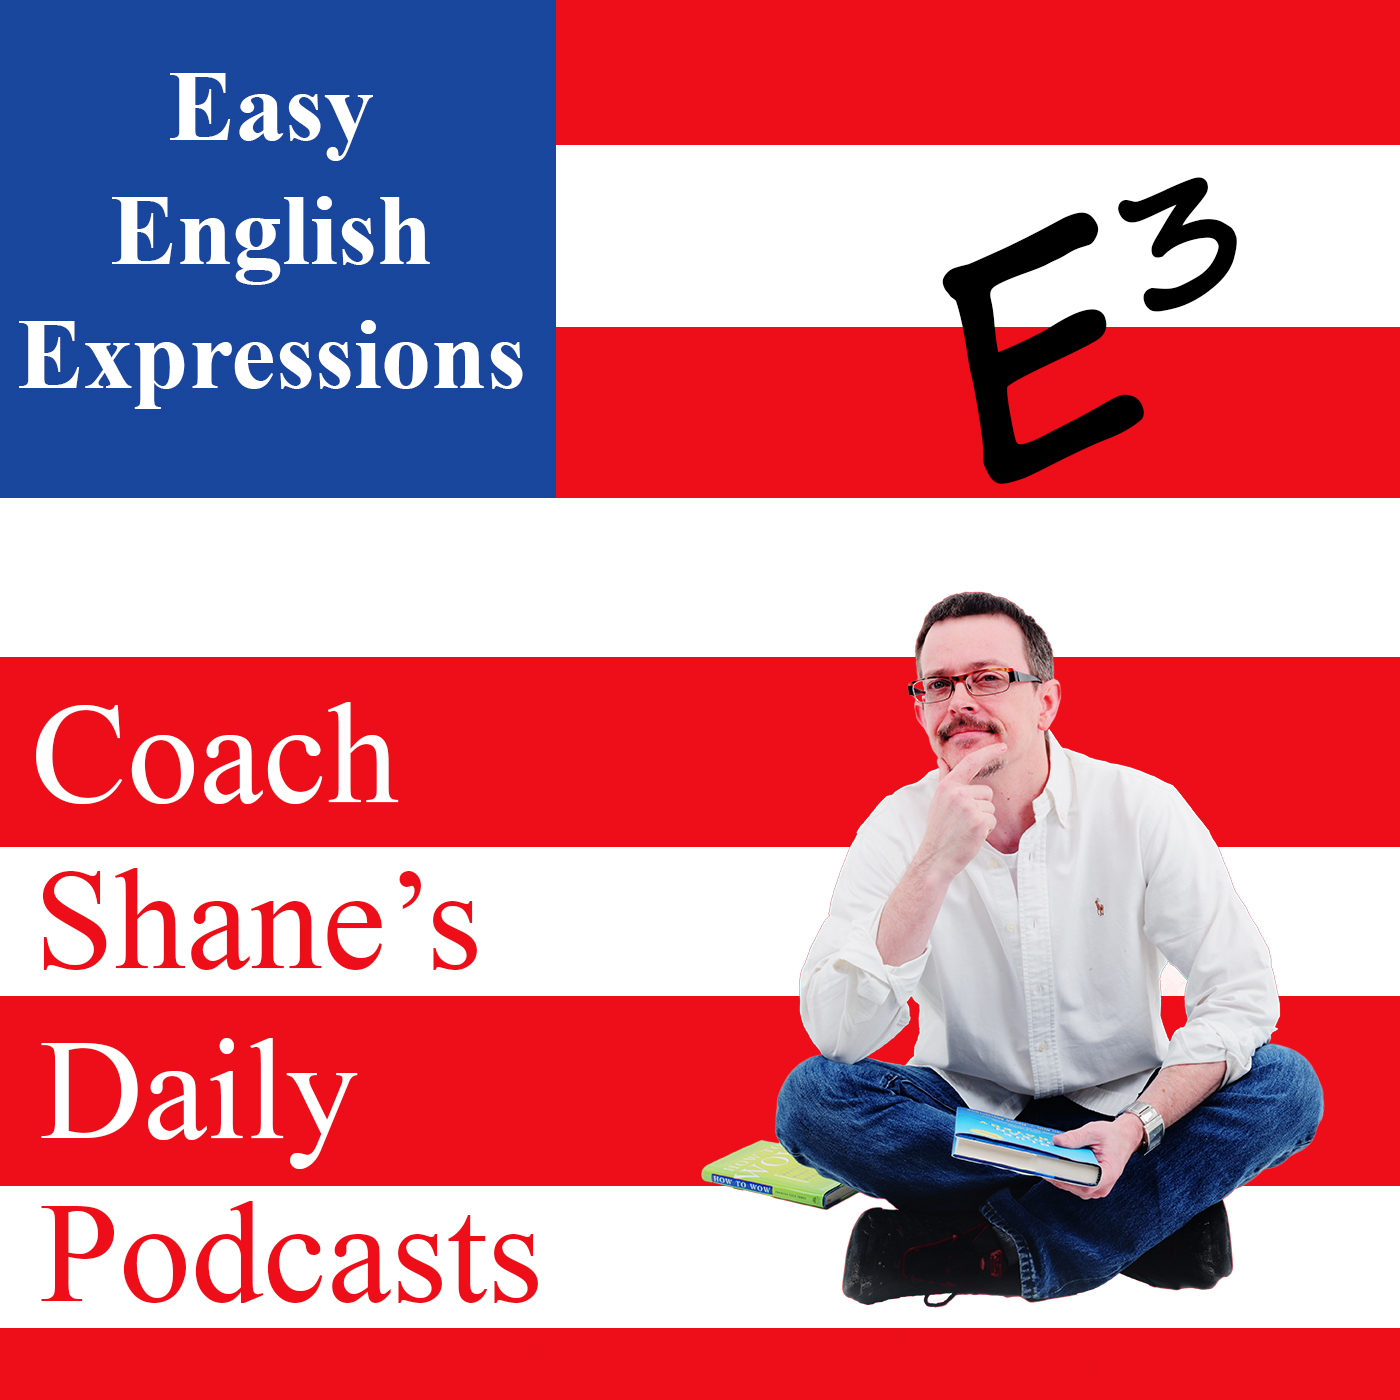 79 Daily Easy English Expression PODCAST—My dogs are barking!